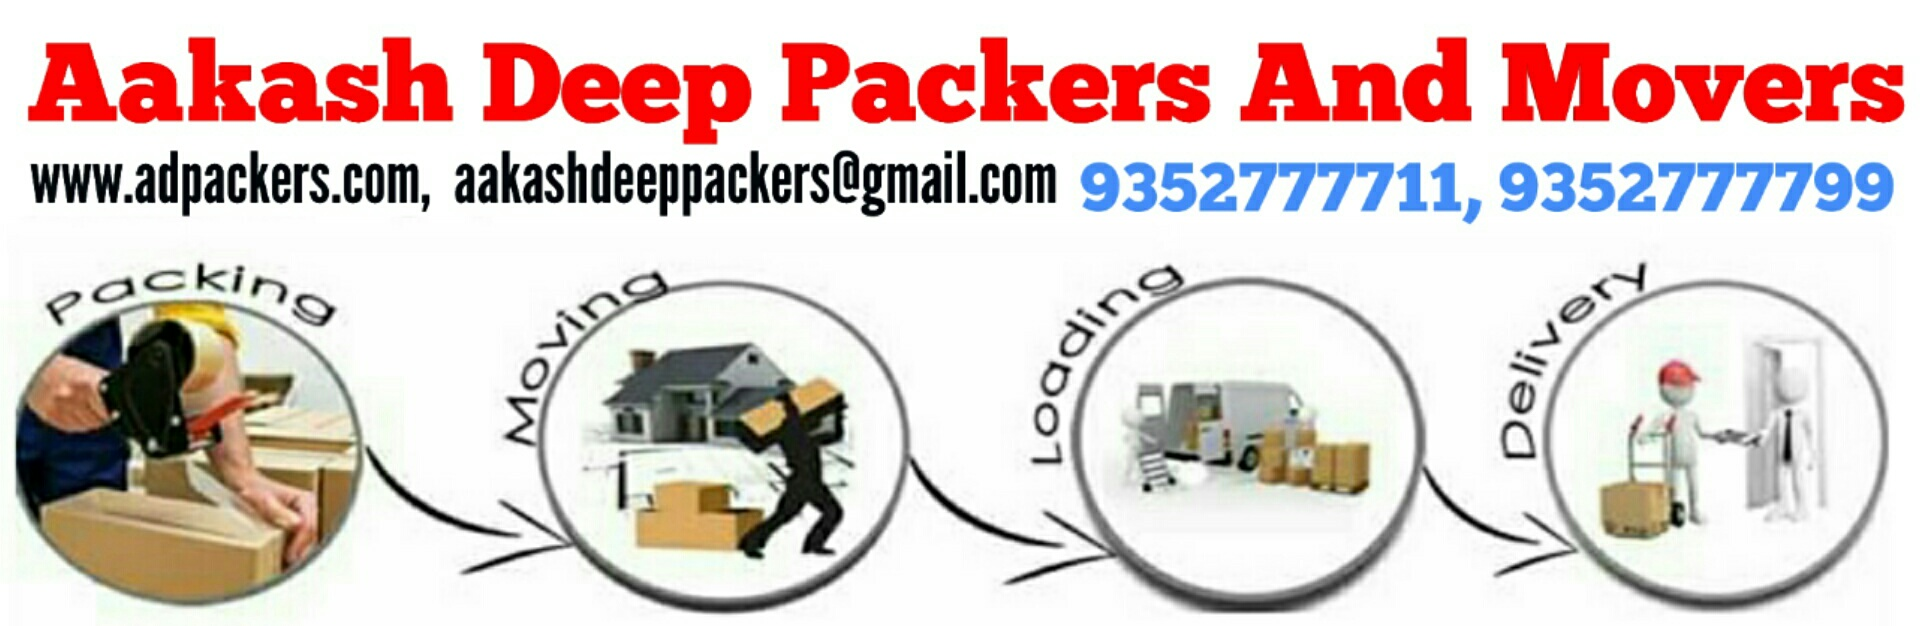 Packers And Movers in Nasirabad | Movers And Packers in Nasirabad